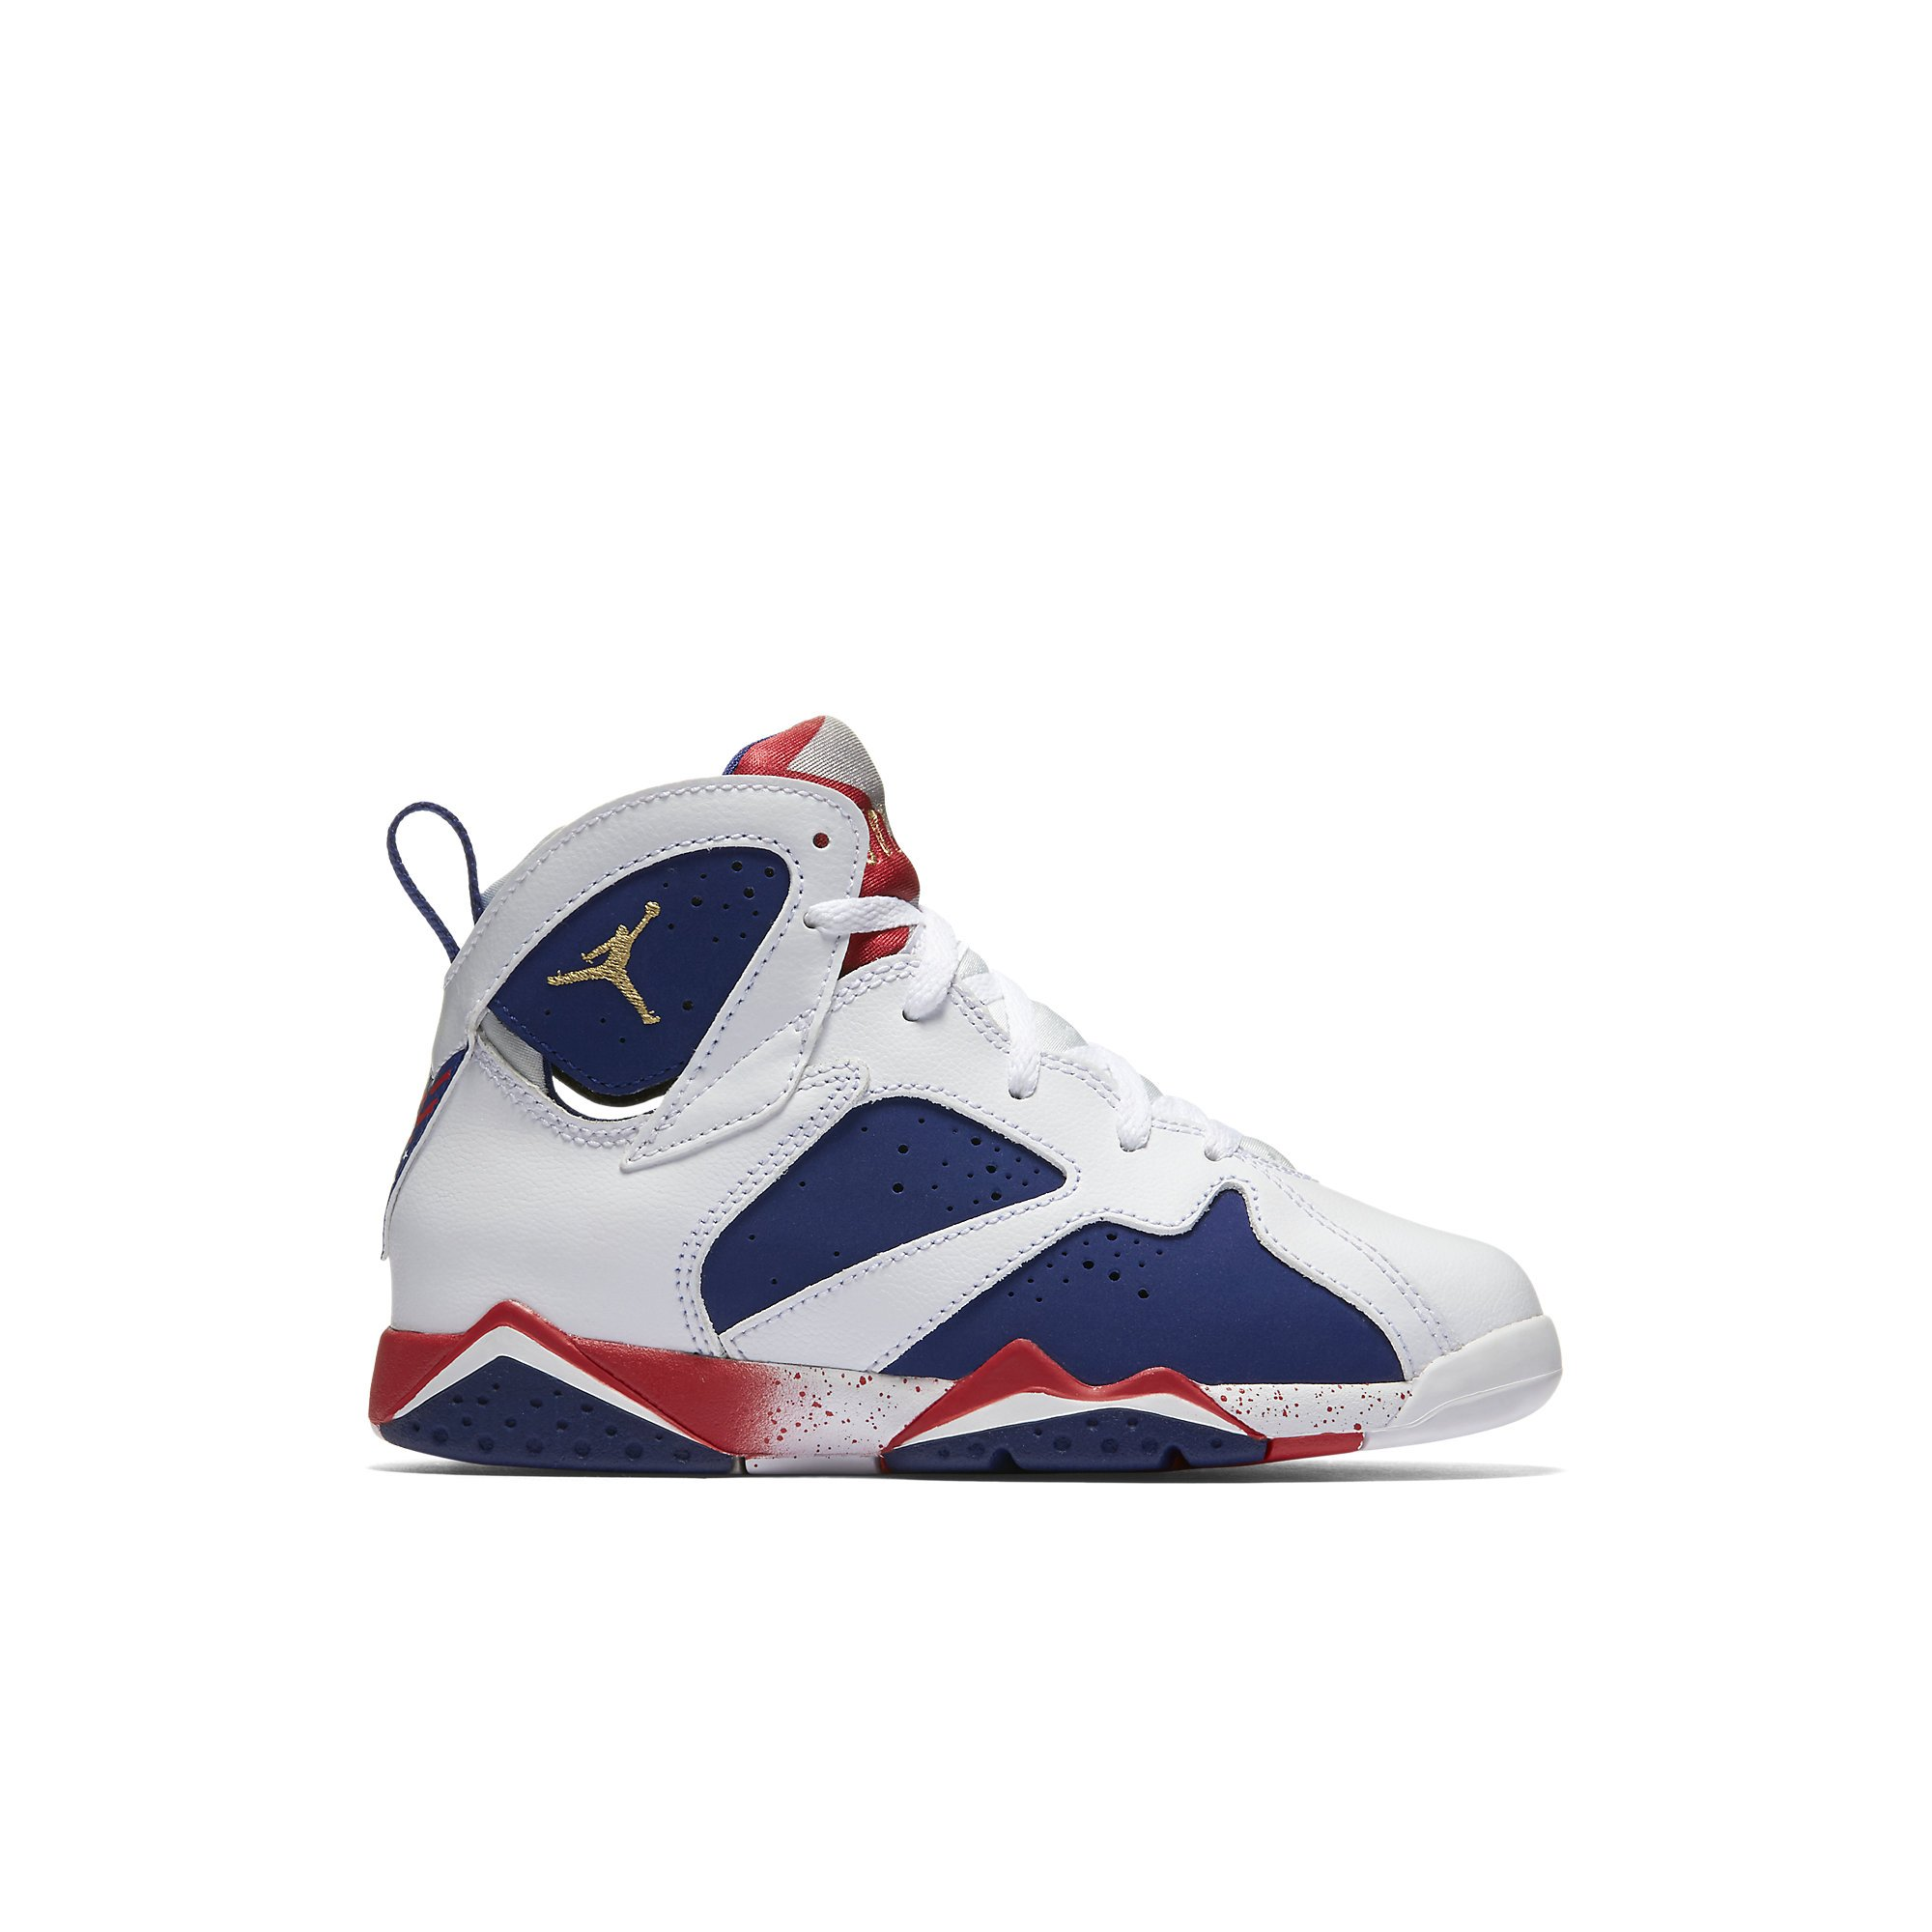 Air Jordan 7 Retro PS ''Olympic Tinker Alternate'' Little Kid's Shoes White/Deep Royal Blue/Fire Red/Metallic Gold Coin 304773-133 (1.5 M US)